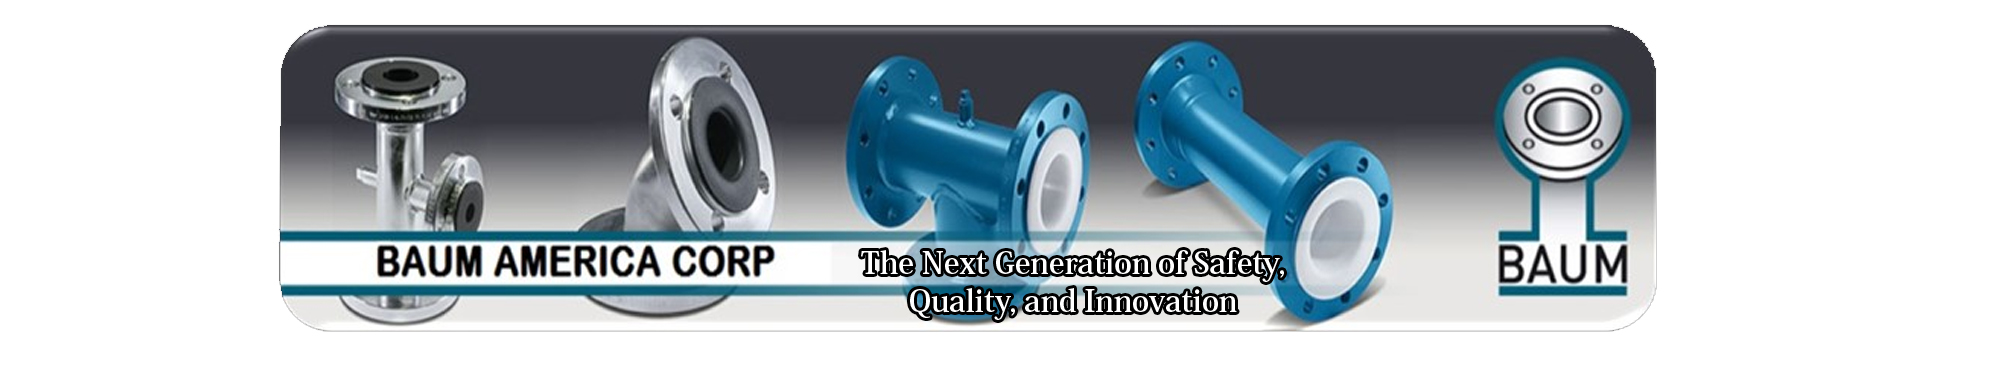 PTFE-Lined Pipes | Charleston, WV - Baum America Corp